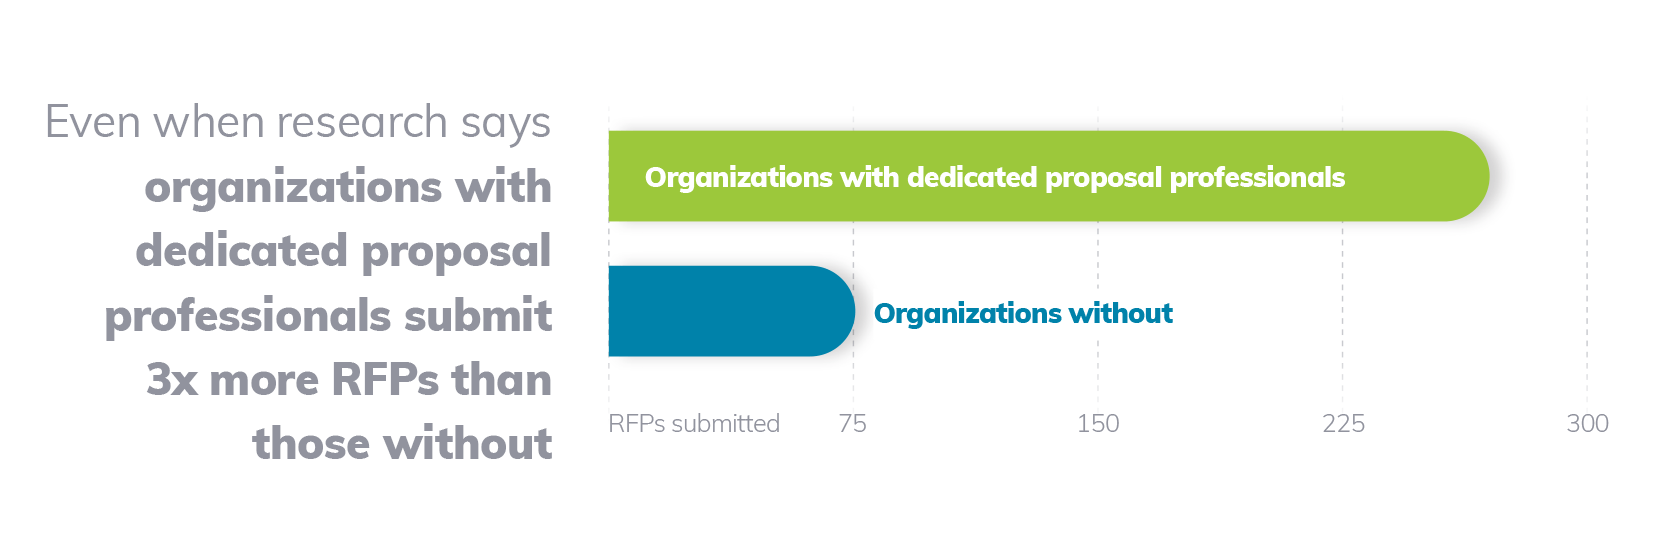 Organizations with dedicated proposal professionals submit 3x more RFPs than those without